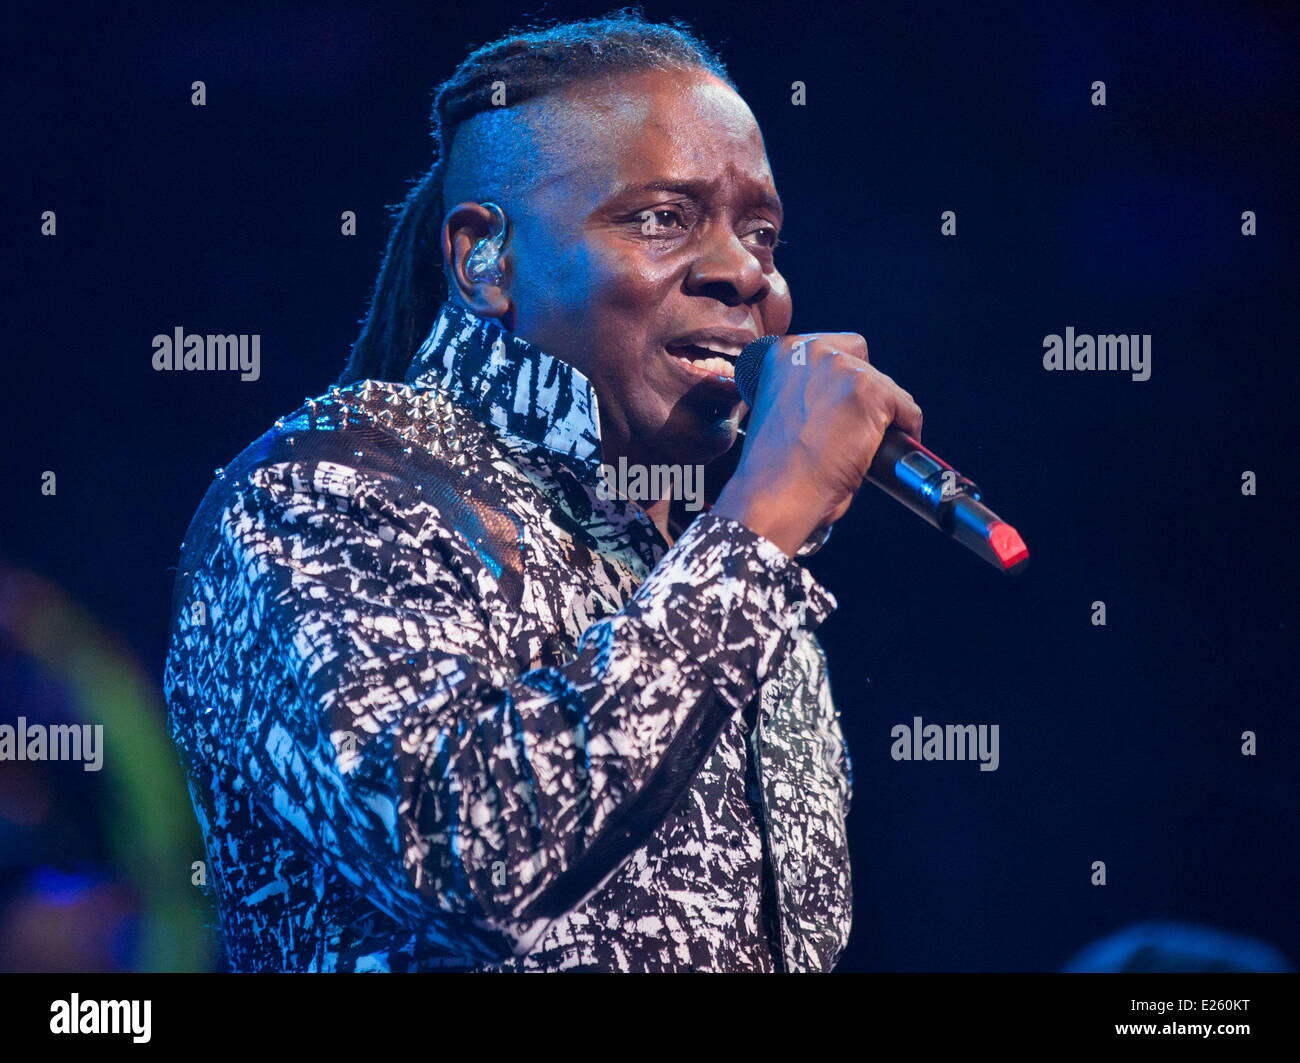 Earth, Wind & Fire perform live at the Royal Albert Hall  Featuring: Philip Bailey Where: London, United Kingdom - Stock Image